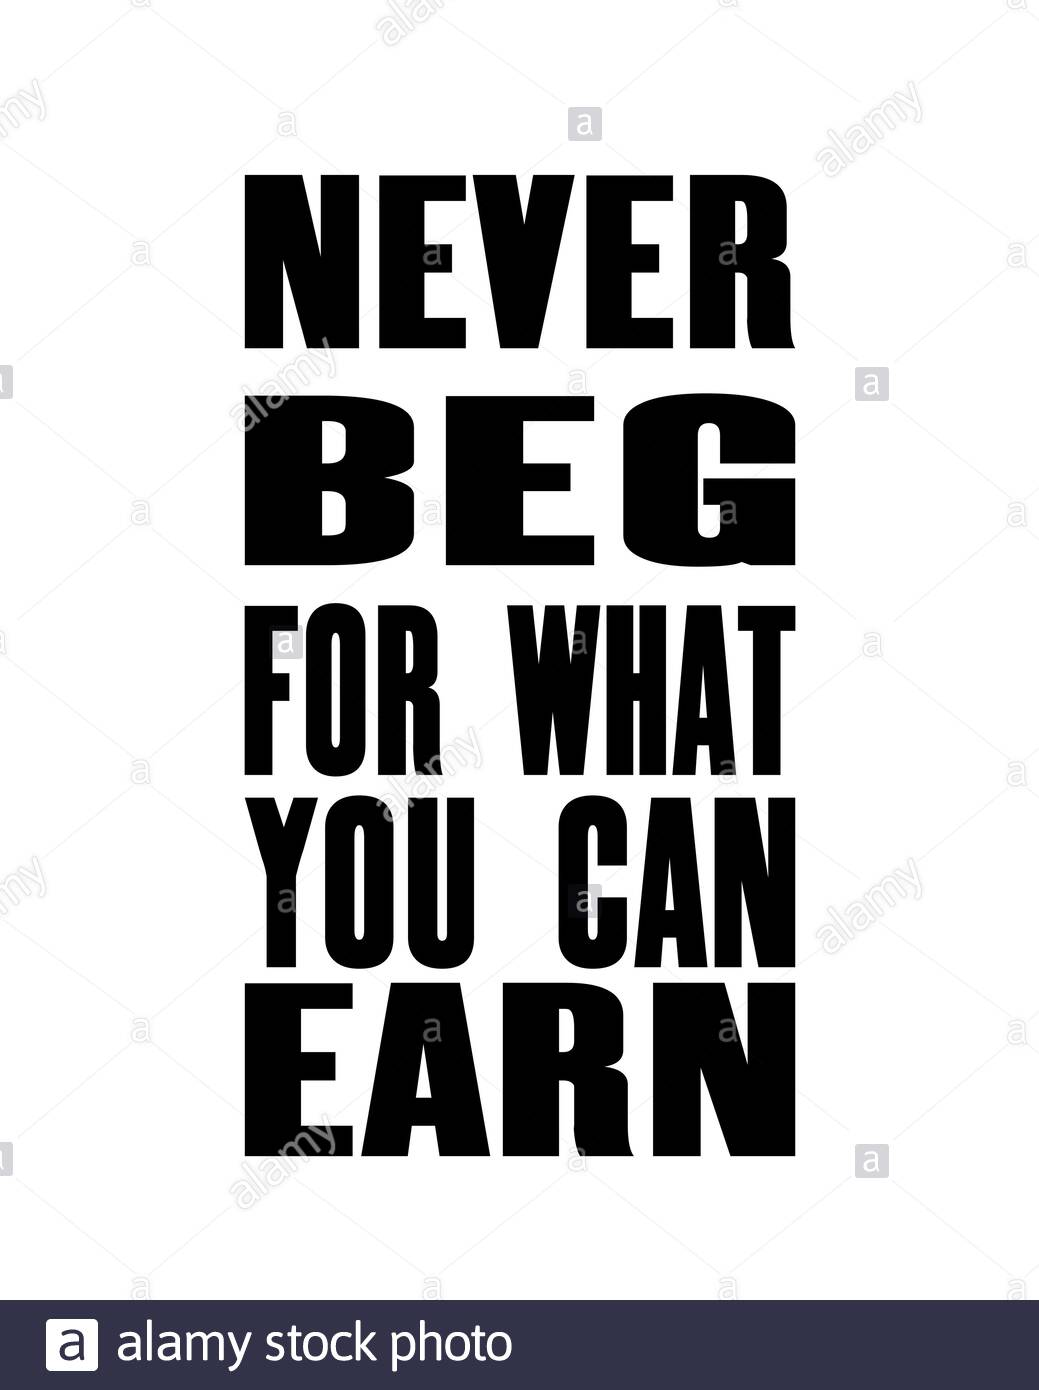 Never Beg Quotes : never, quotes, Inspiring, Motivation, Quote, Never, ForWhat, Earn., Vector, Typography, Poster, Design, Concept., Distressed, Metal, Texture, Stock, Image, Alamy